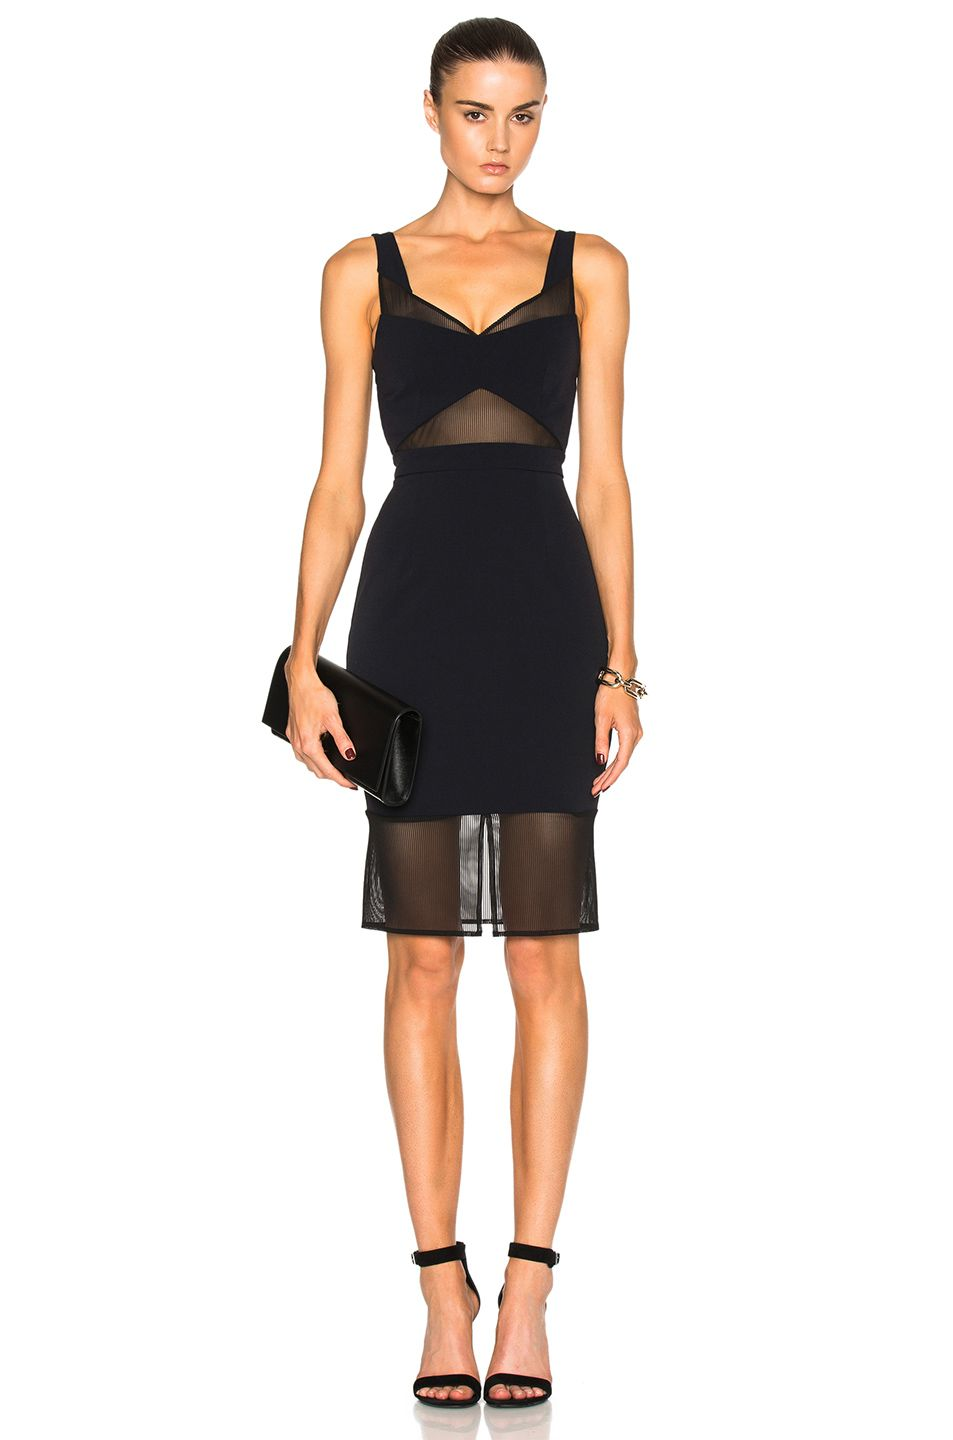 Image 1 of Carisa Rene by Nightcap Tulle Cut Out Dress em Preto